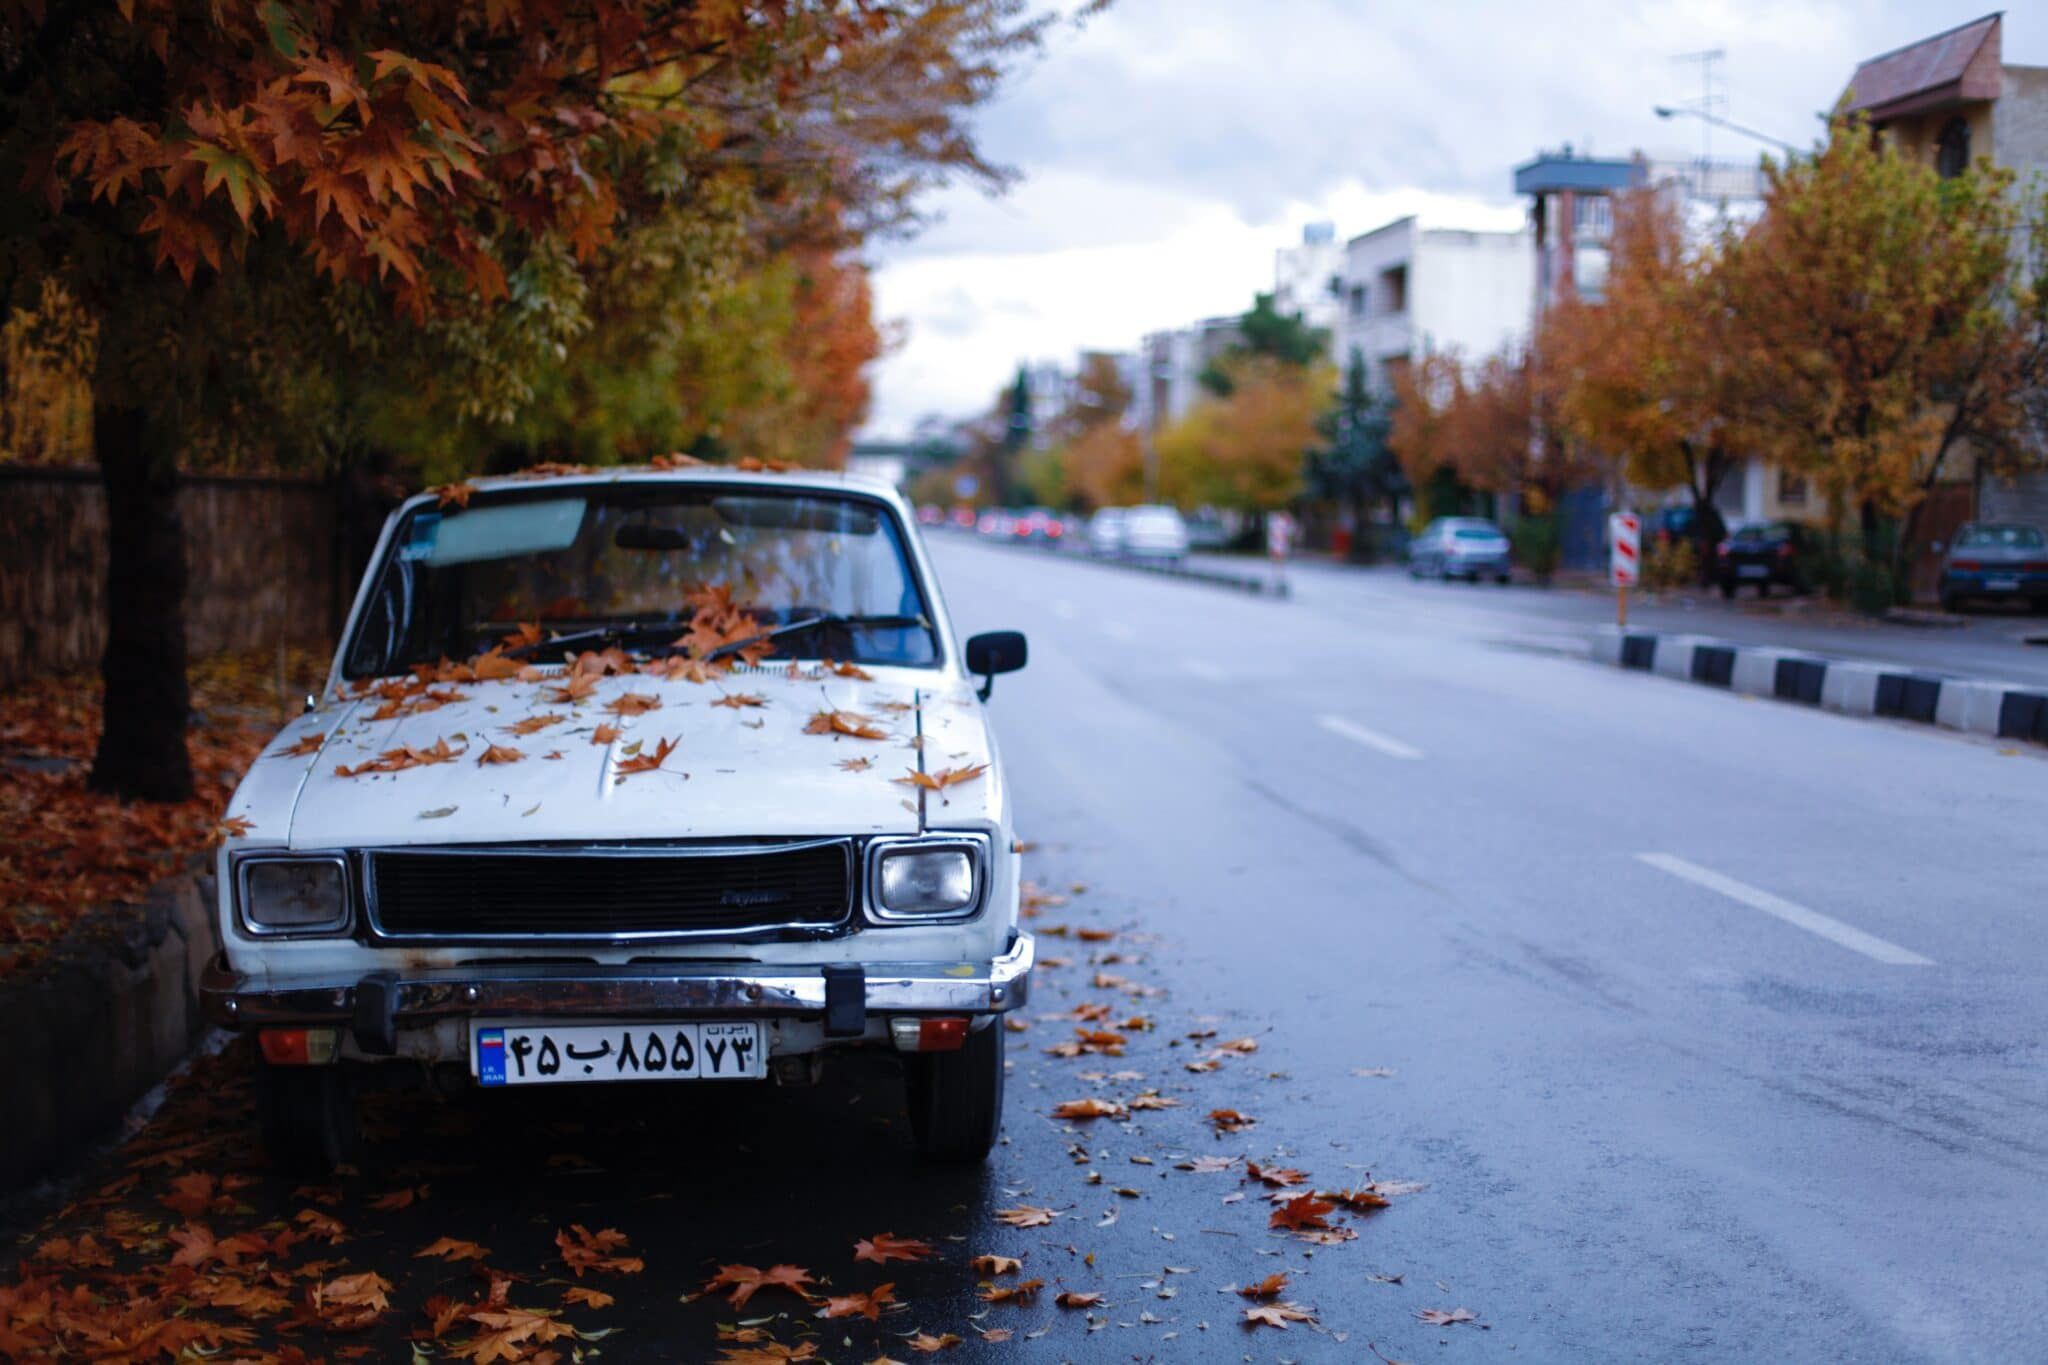 old white car on the street with leaves